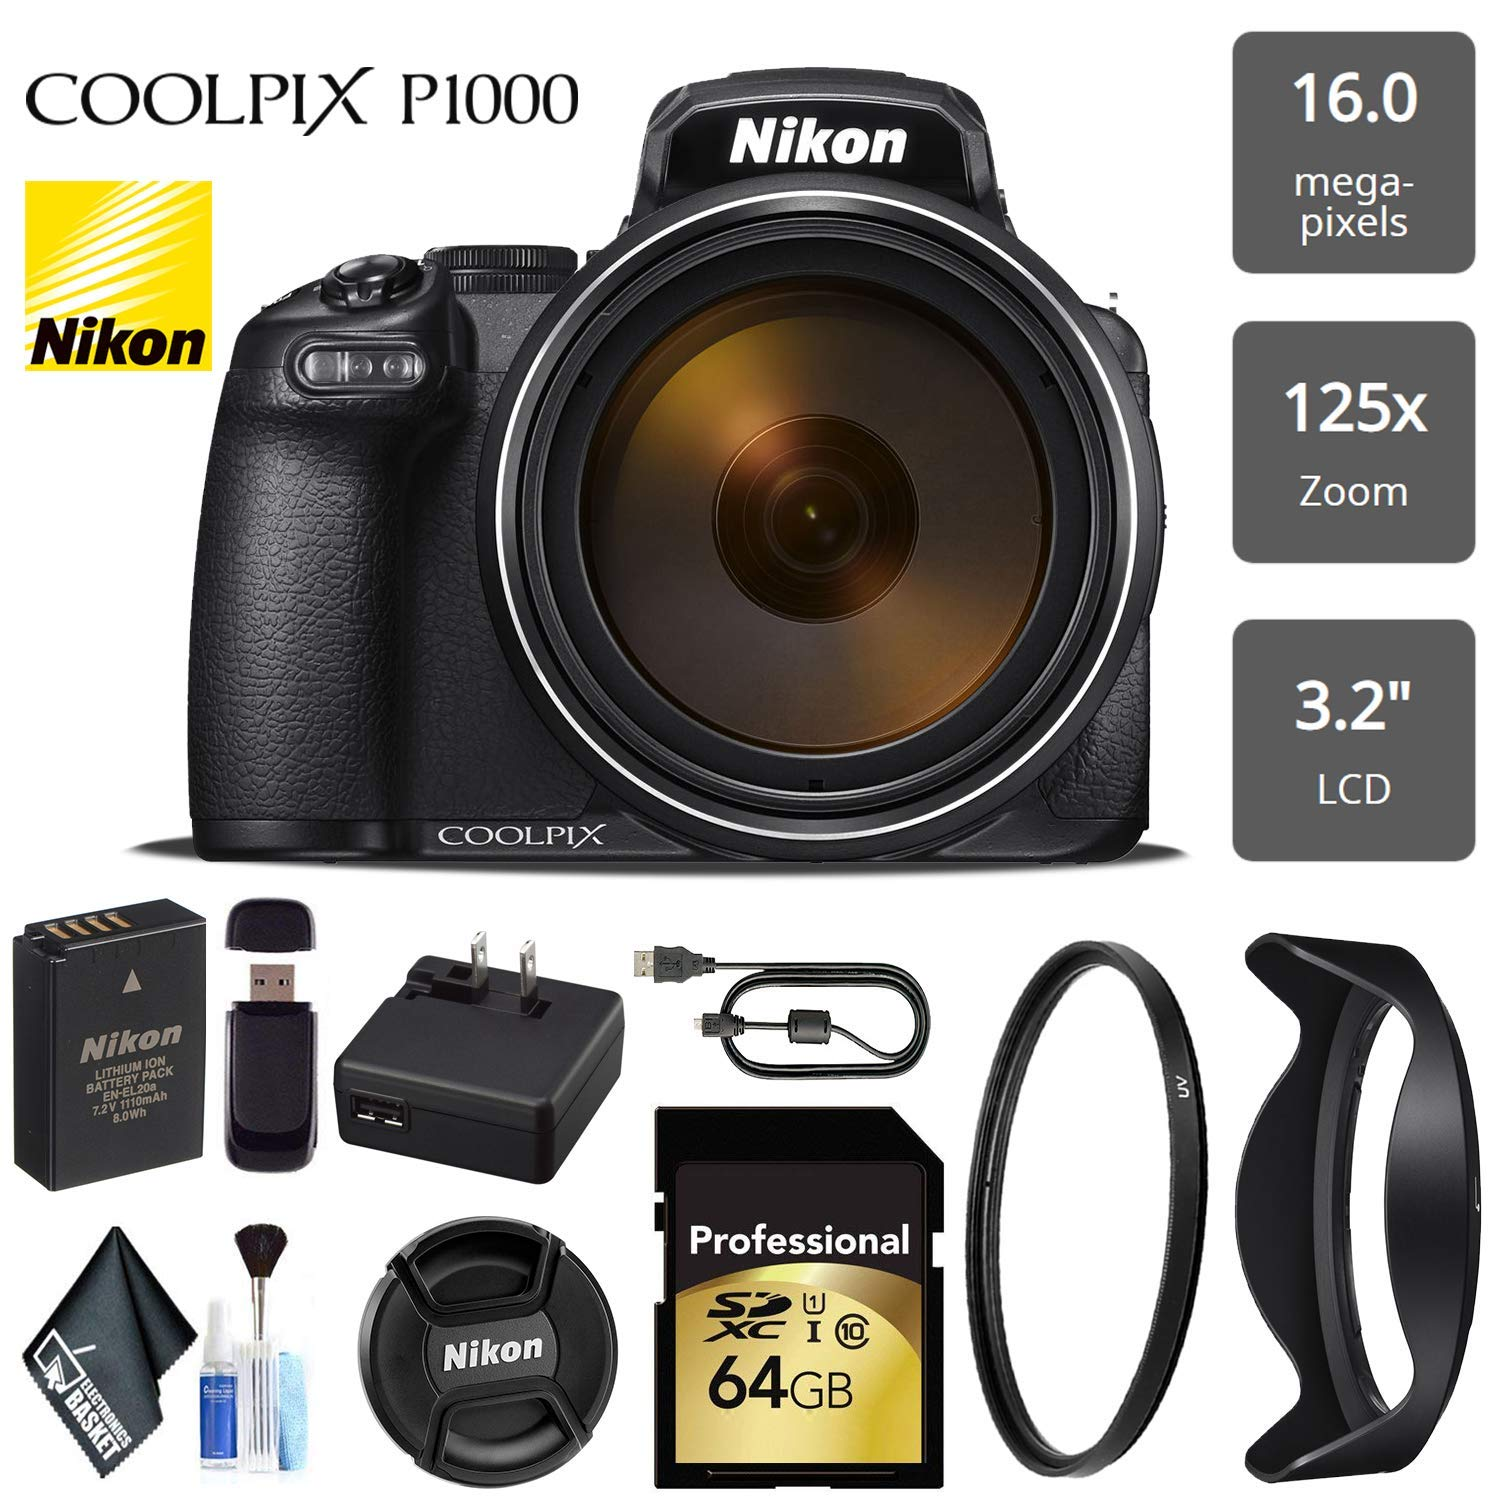 Nikon COOLPIX P1000 Digital Camera 16MP 125x Optical Zoom & Build in Wi-Fi + UV Protection Filter - International Version by Electronics Basket